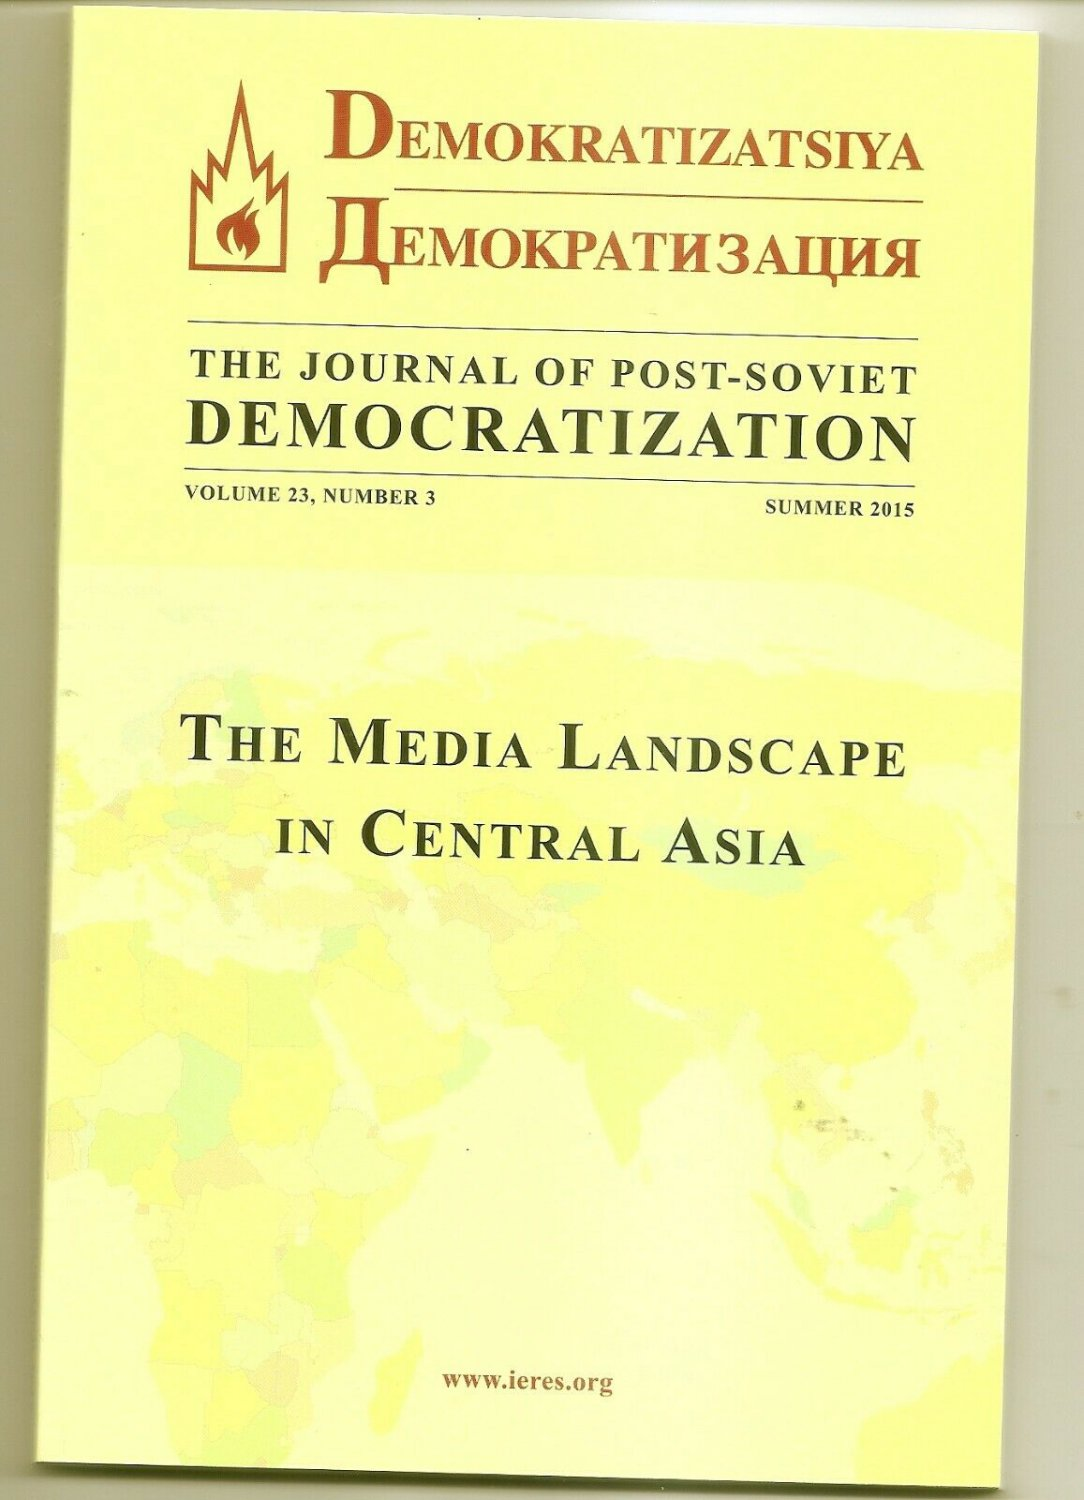 MEDIA LANDSCAPE IN CENTRAL ASIA  Journal of Post-Soviet Democratization Vol 23